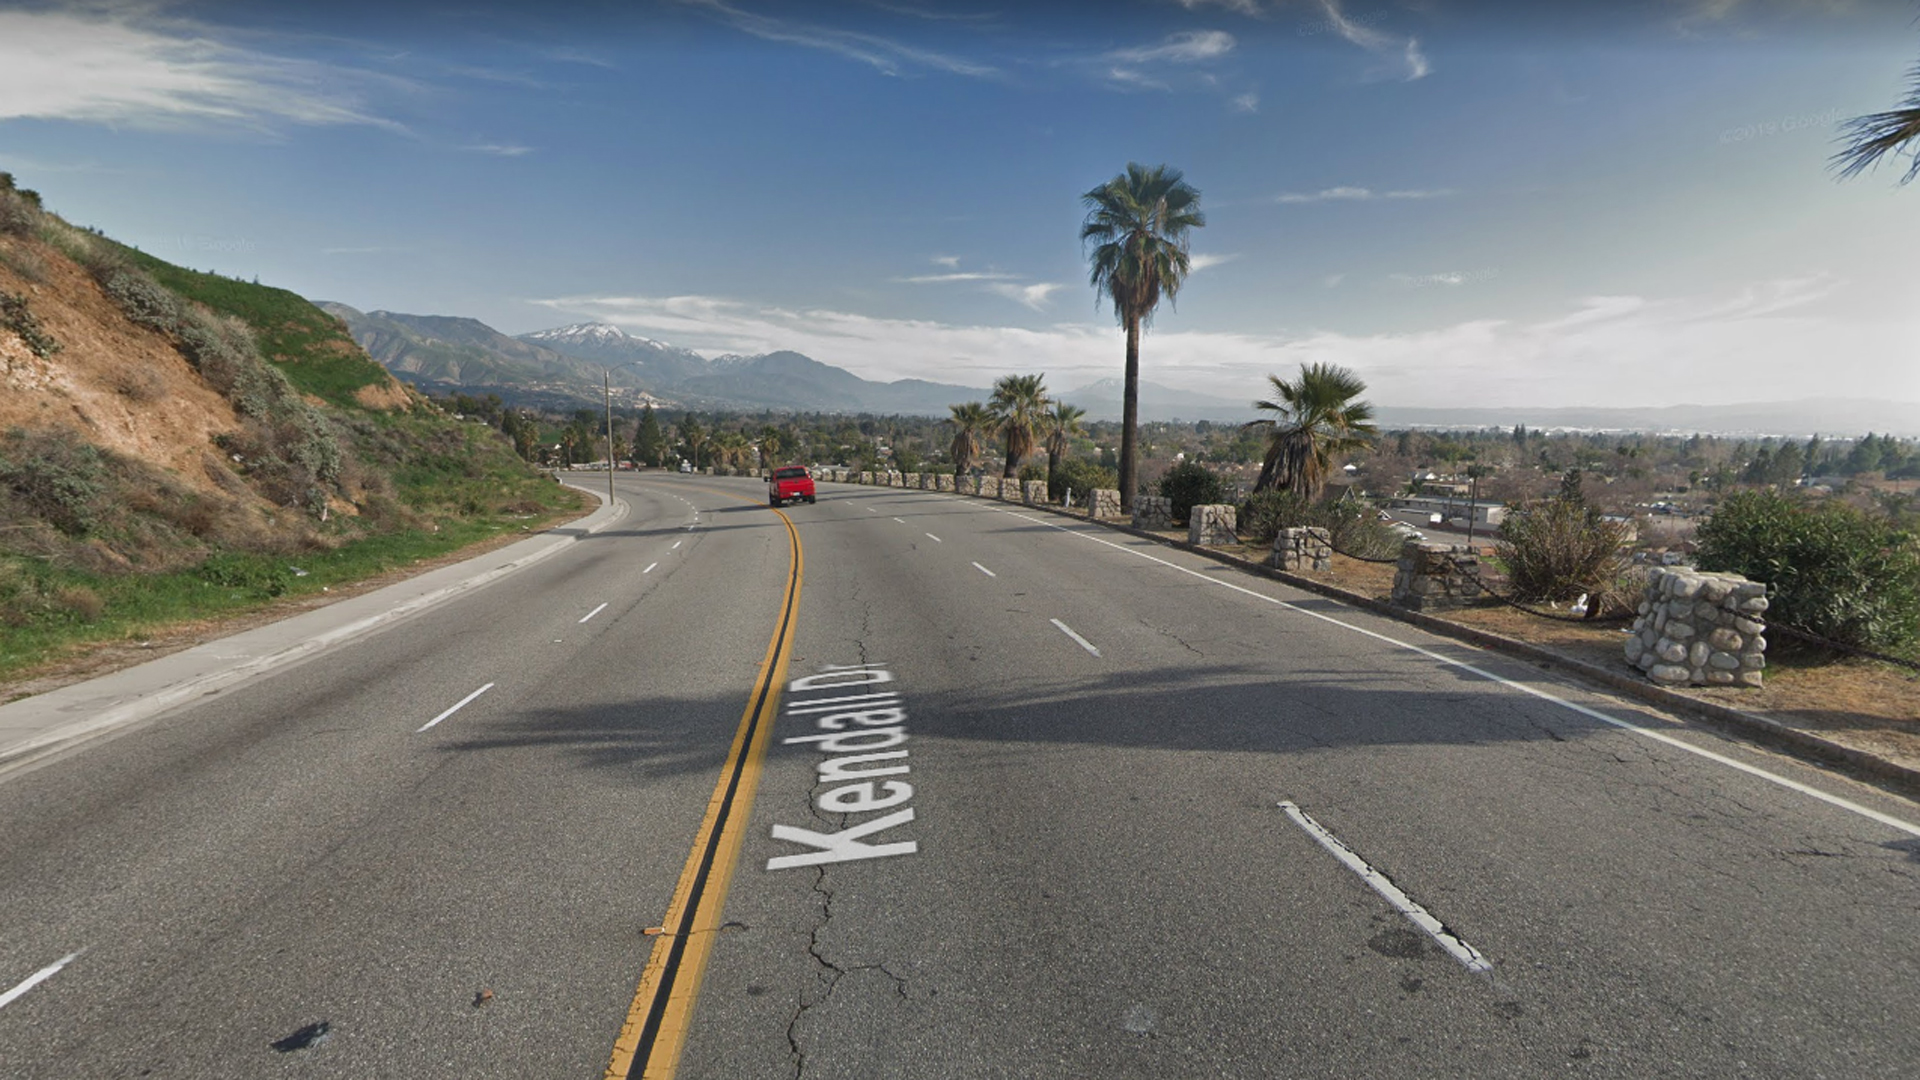 Eastbound Kendall Drive approaching E Street in San Bernardino, as viewed in a Google Street View image.